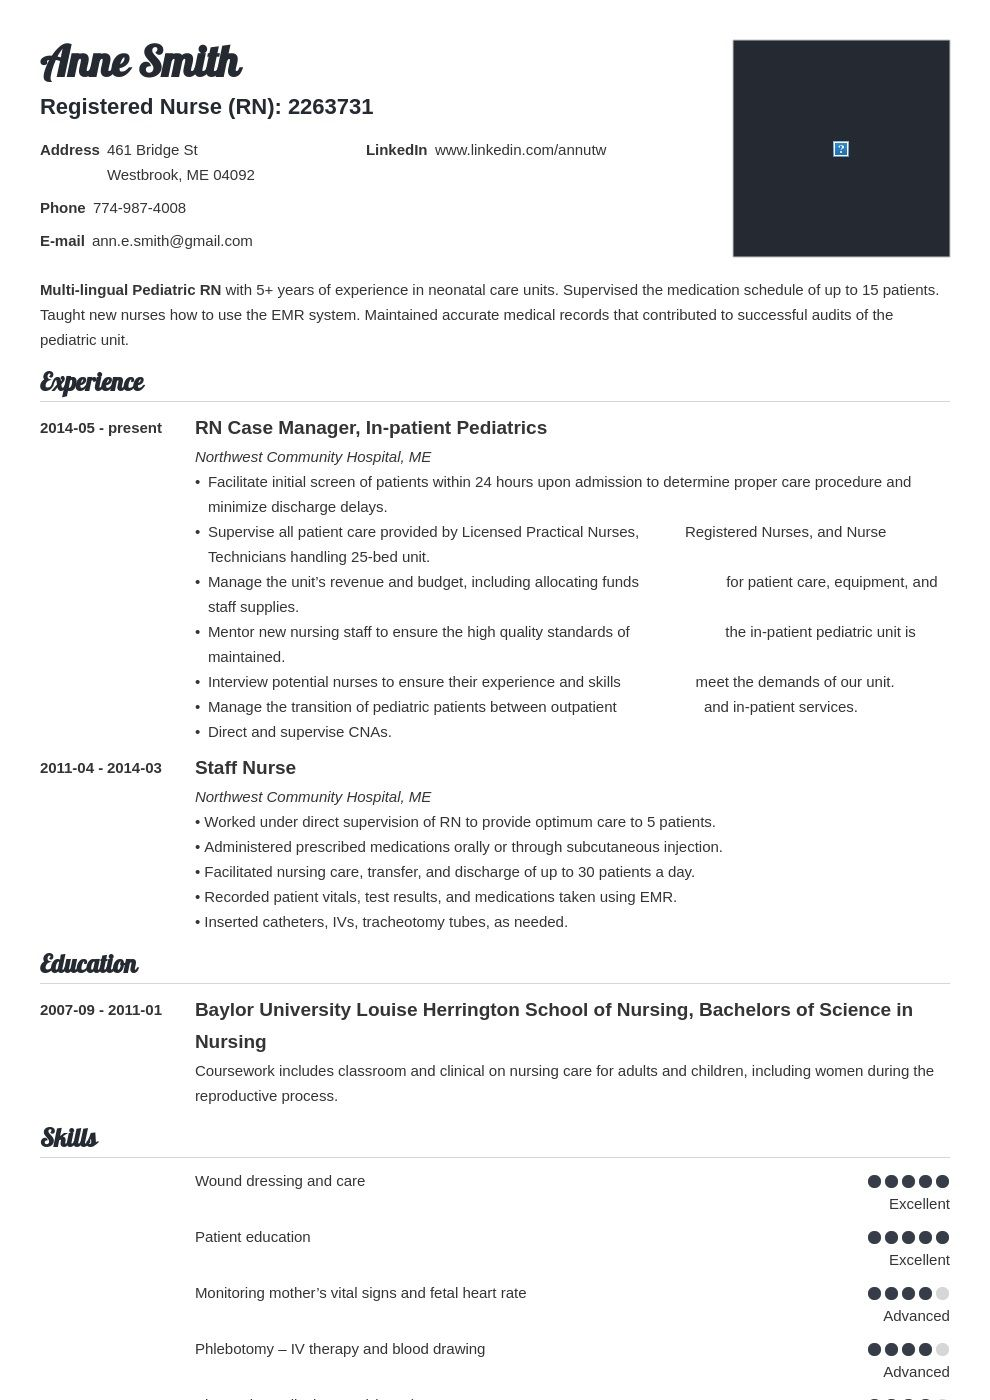 004 Striking Nurse Resume Template Free Design  Graduate RnFull